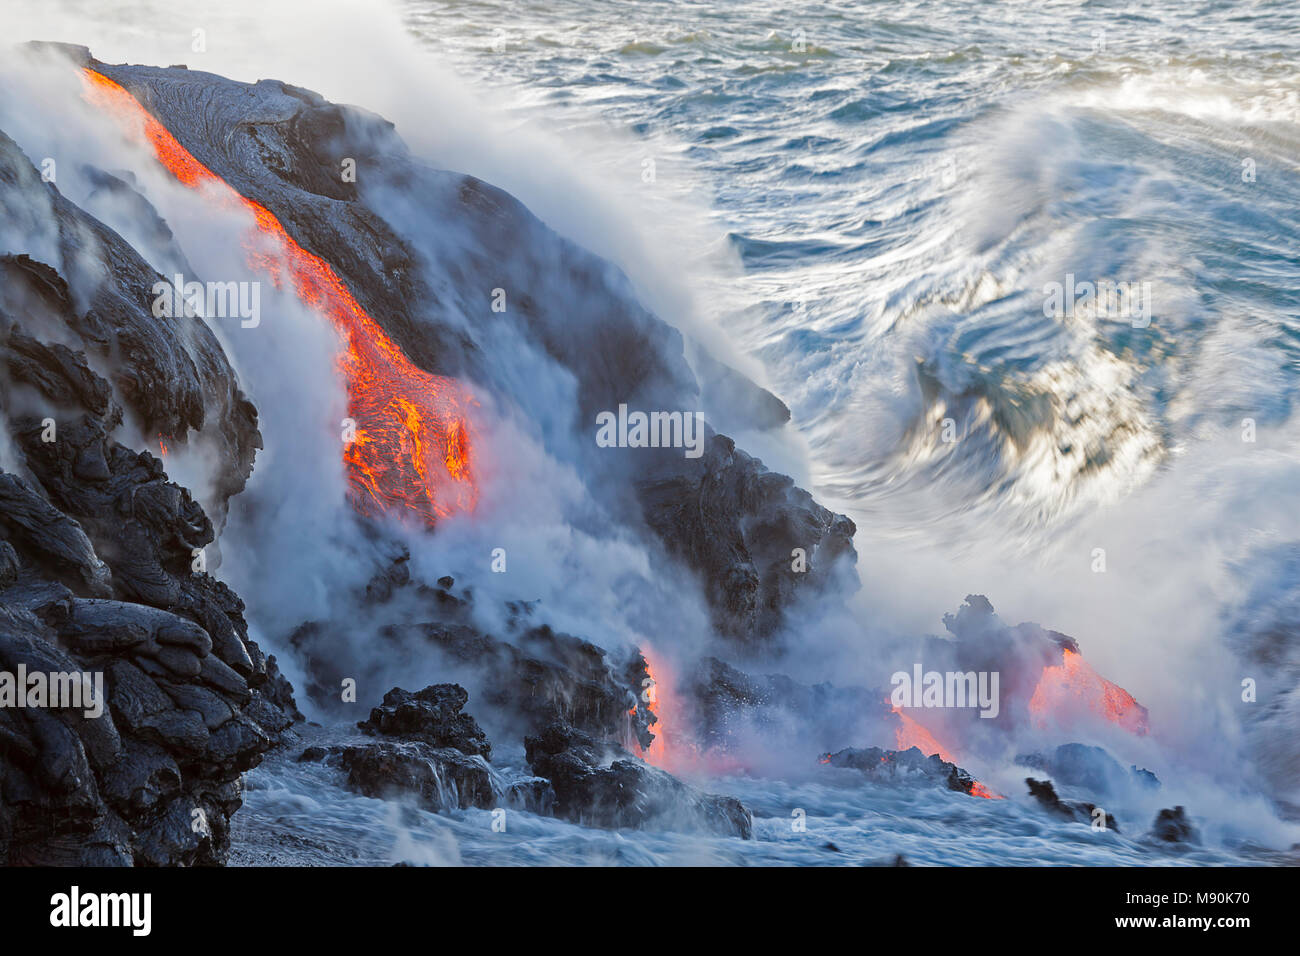 Sea water and molten rock splatter together as a wave crashes onto the Pahoehoe lava flowing from Kilauea into the Pacific Ocean near Kalapana, Big Is - Stock Image